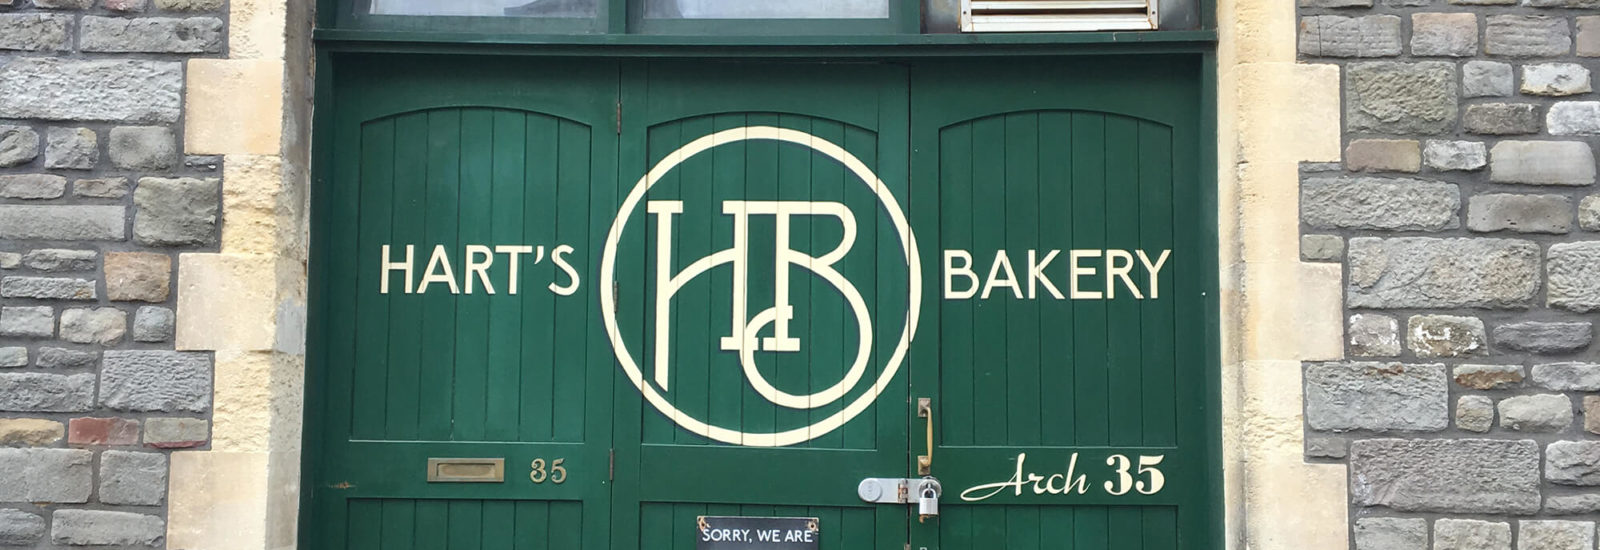 Image of Hart's Bakery